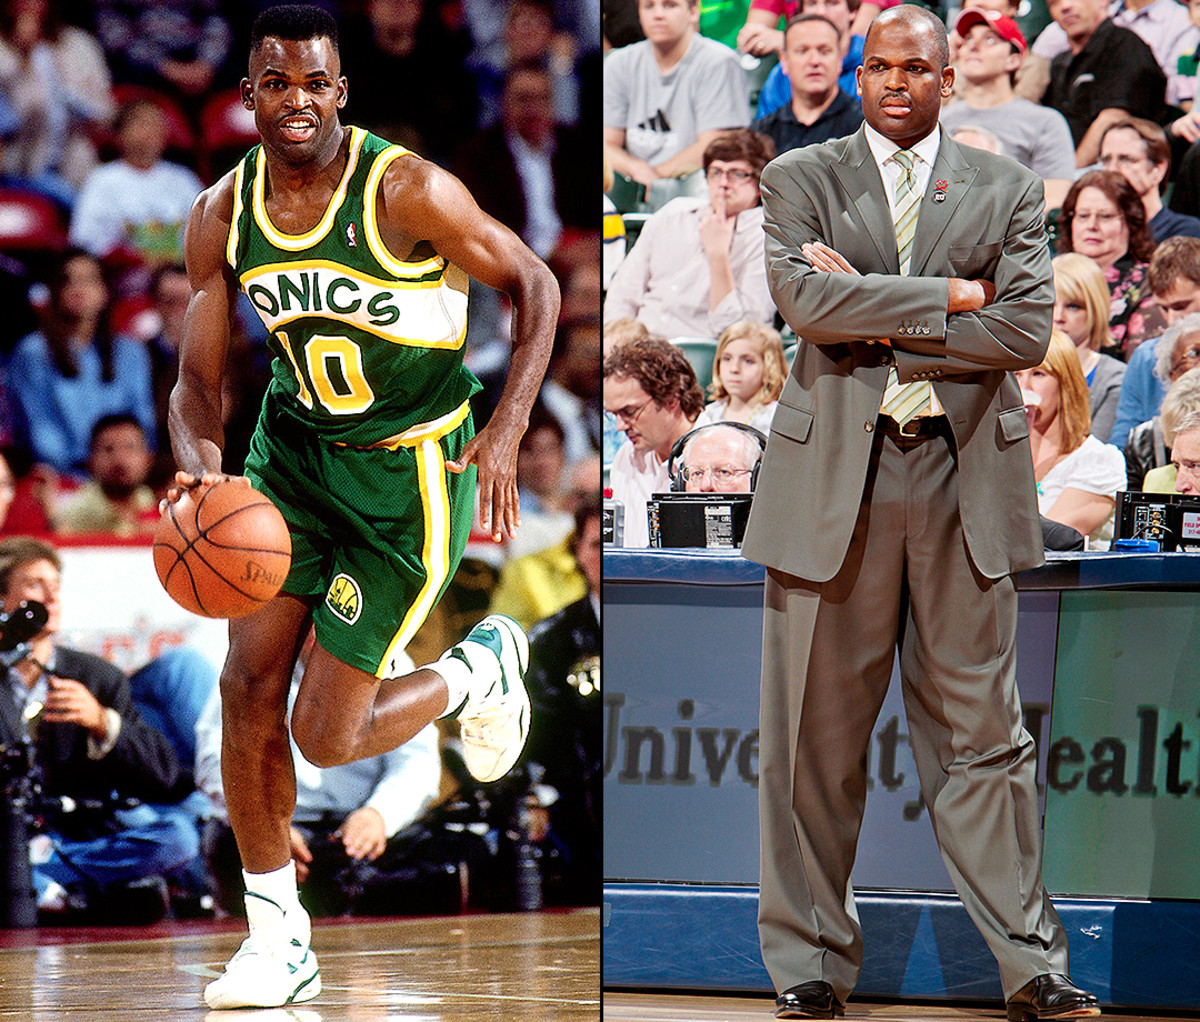 indiana-pacers-nate-mcmillan-coach-frank-vogel-fired.jpg